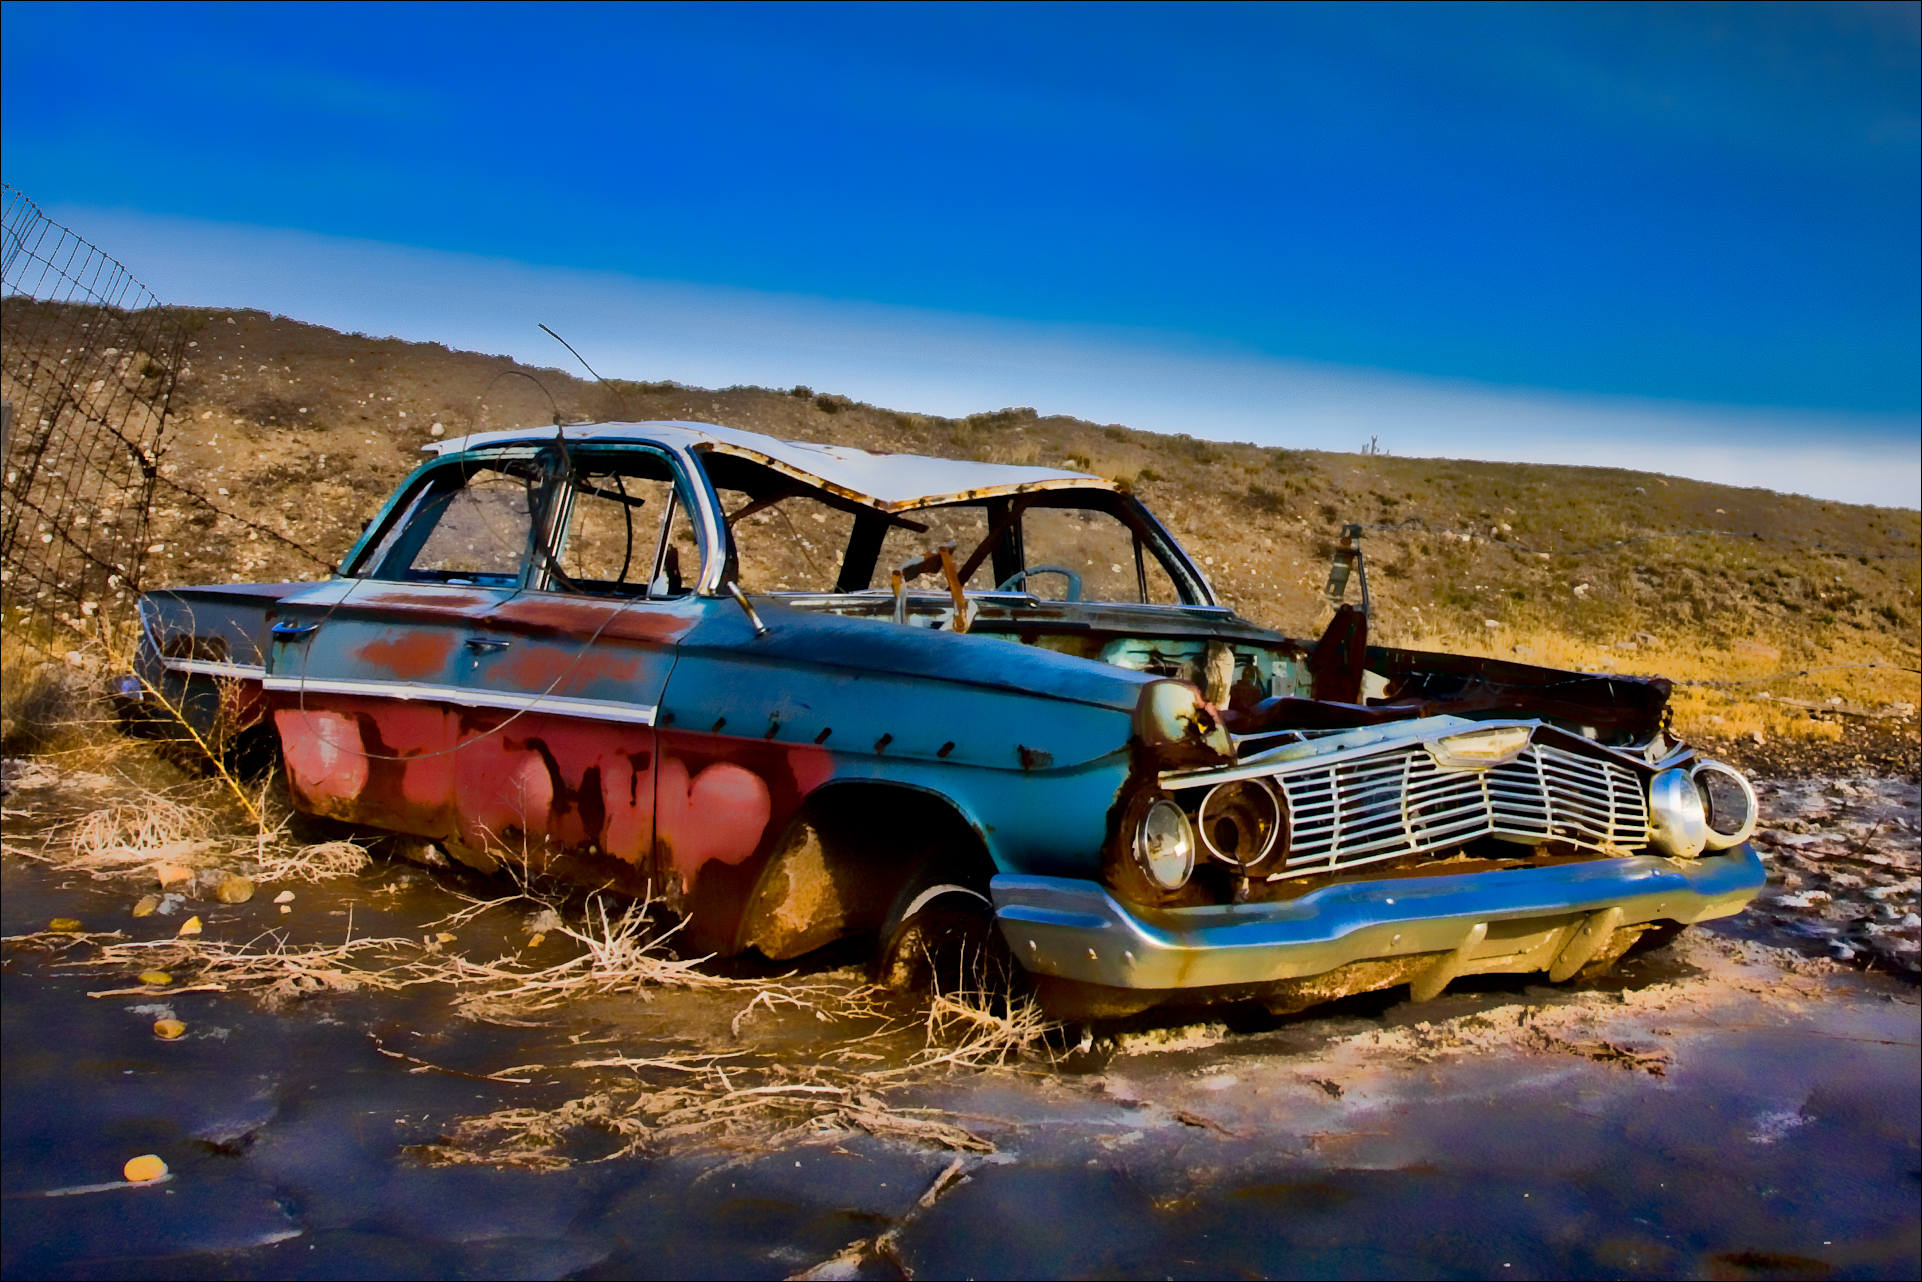 Cars Christopher Martin Photography - Funny old cars